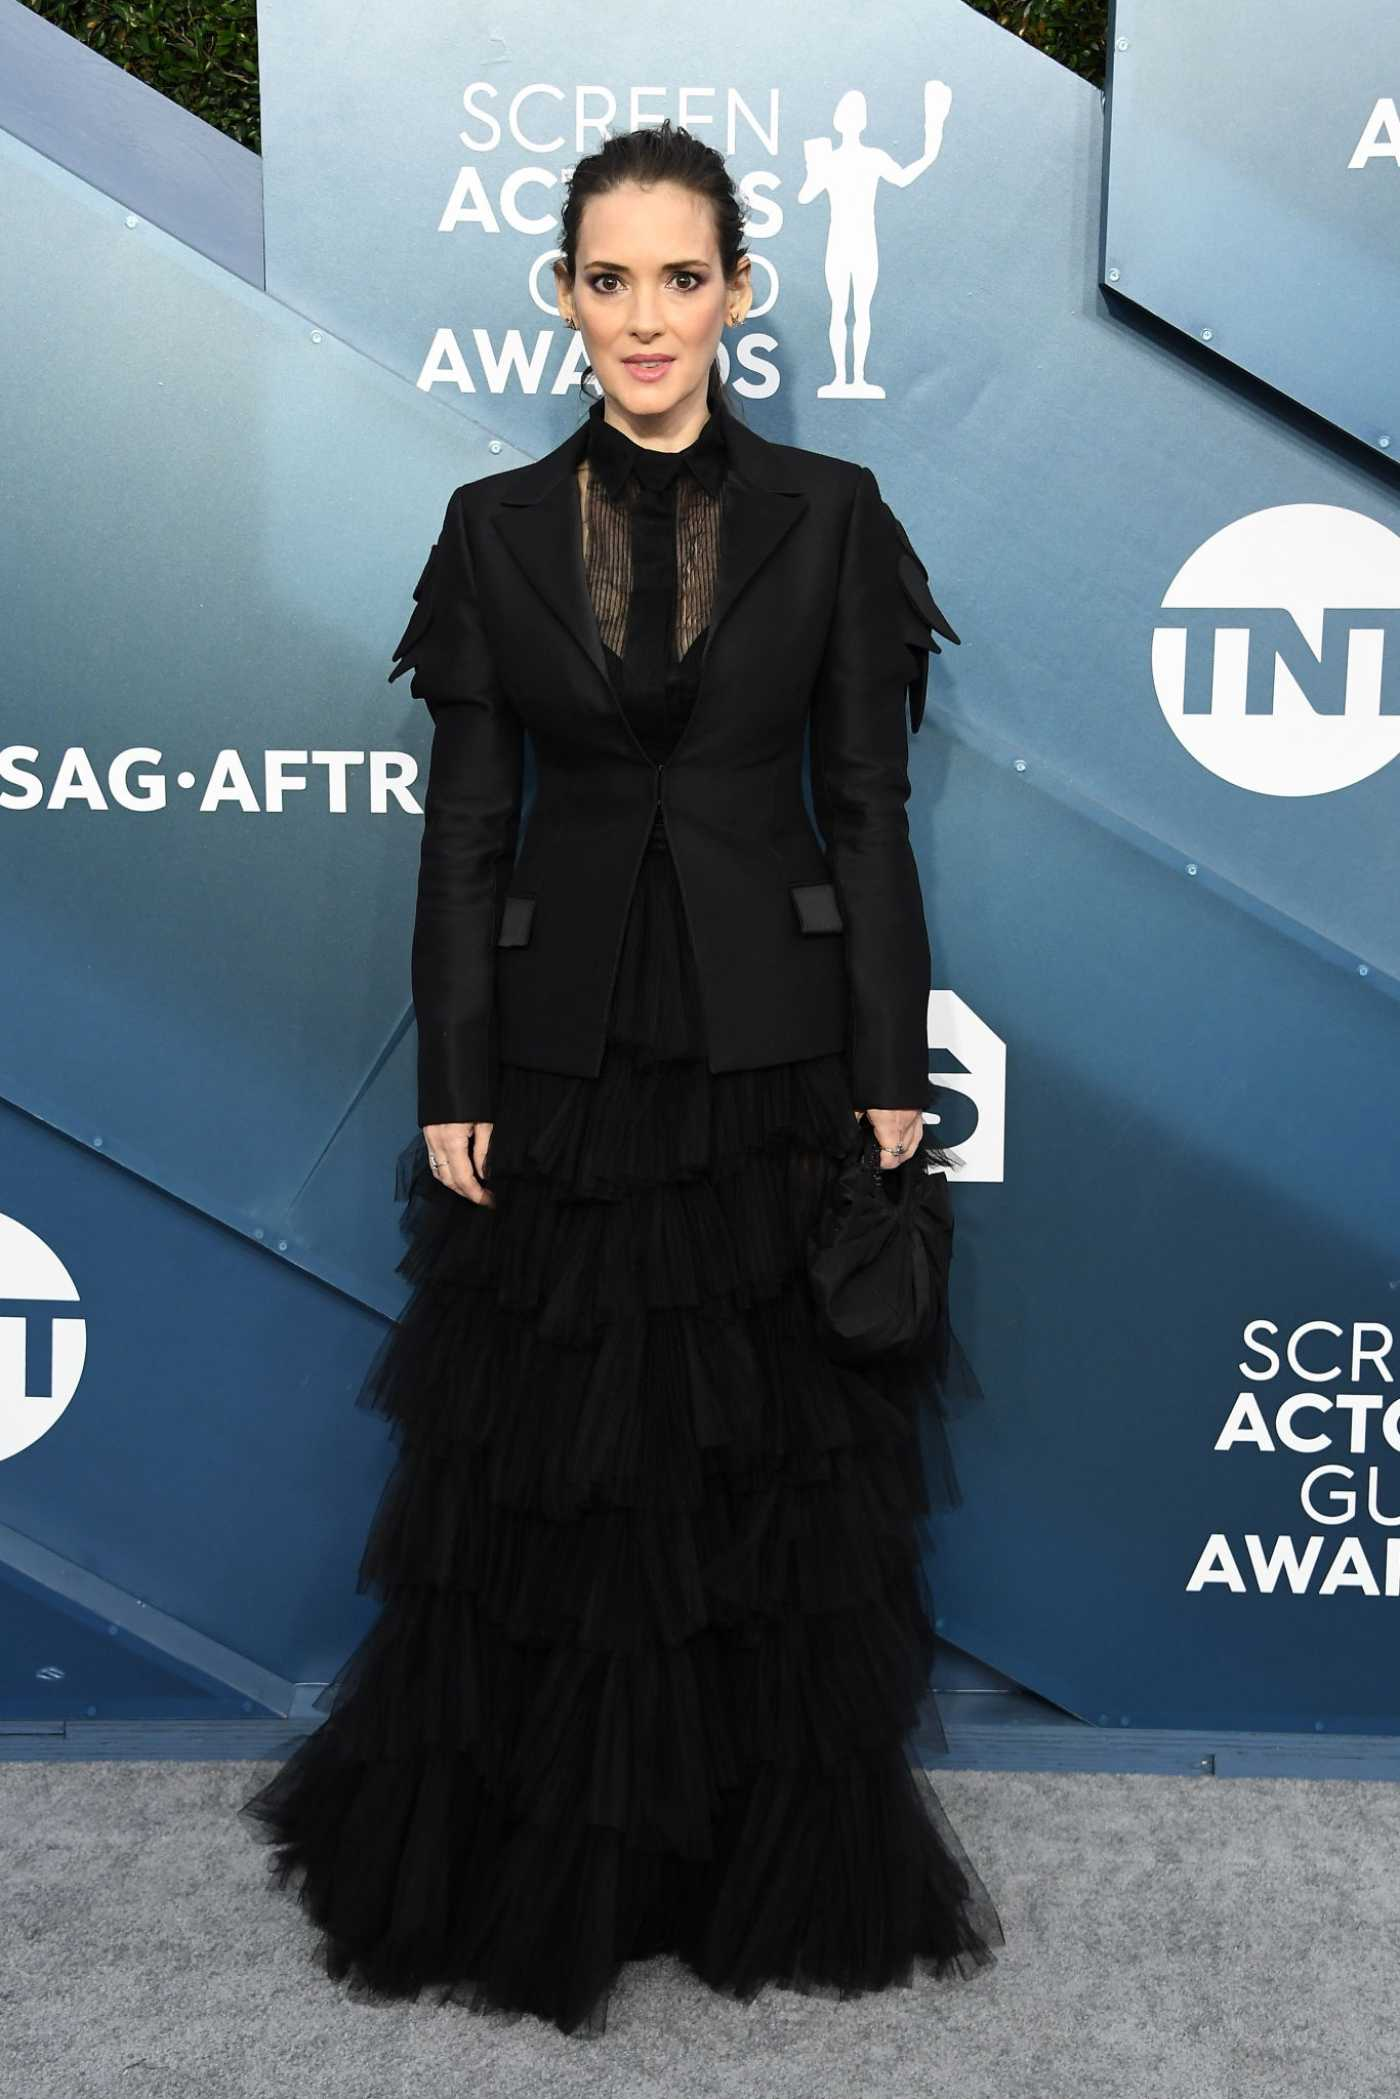 Winona Ryder Attends the 26th Annual Screen Actors Guild Awards in Los Angeles 01/19/2020